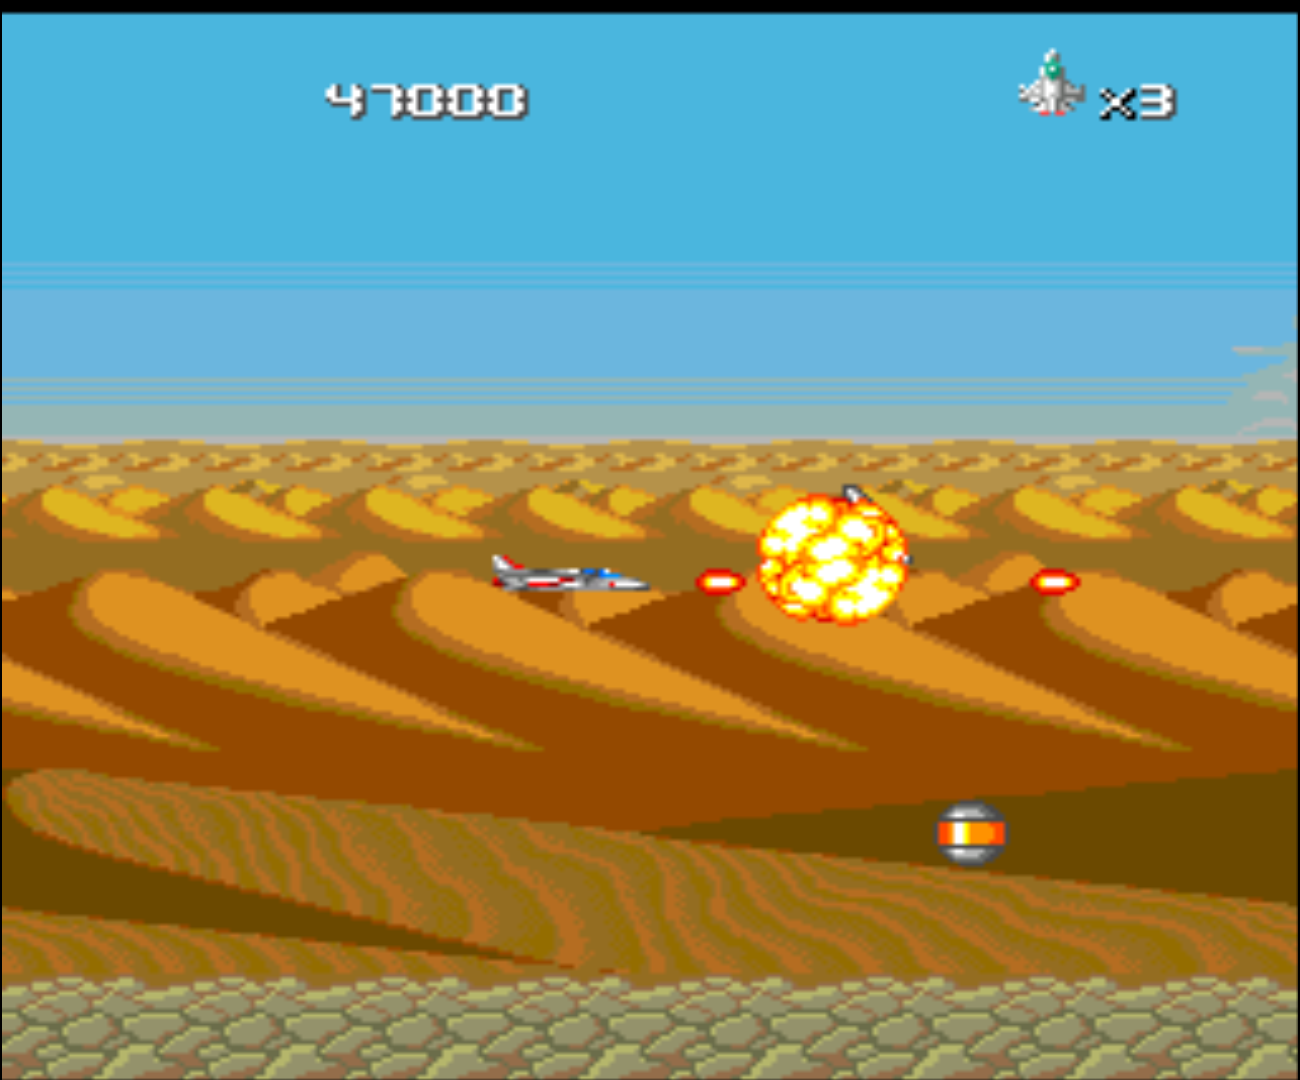 Figure 3 - Love the explosions and multiple level of parallax scrolling